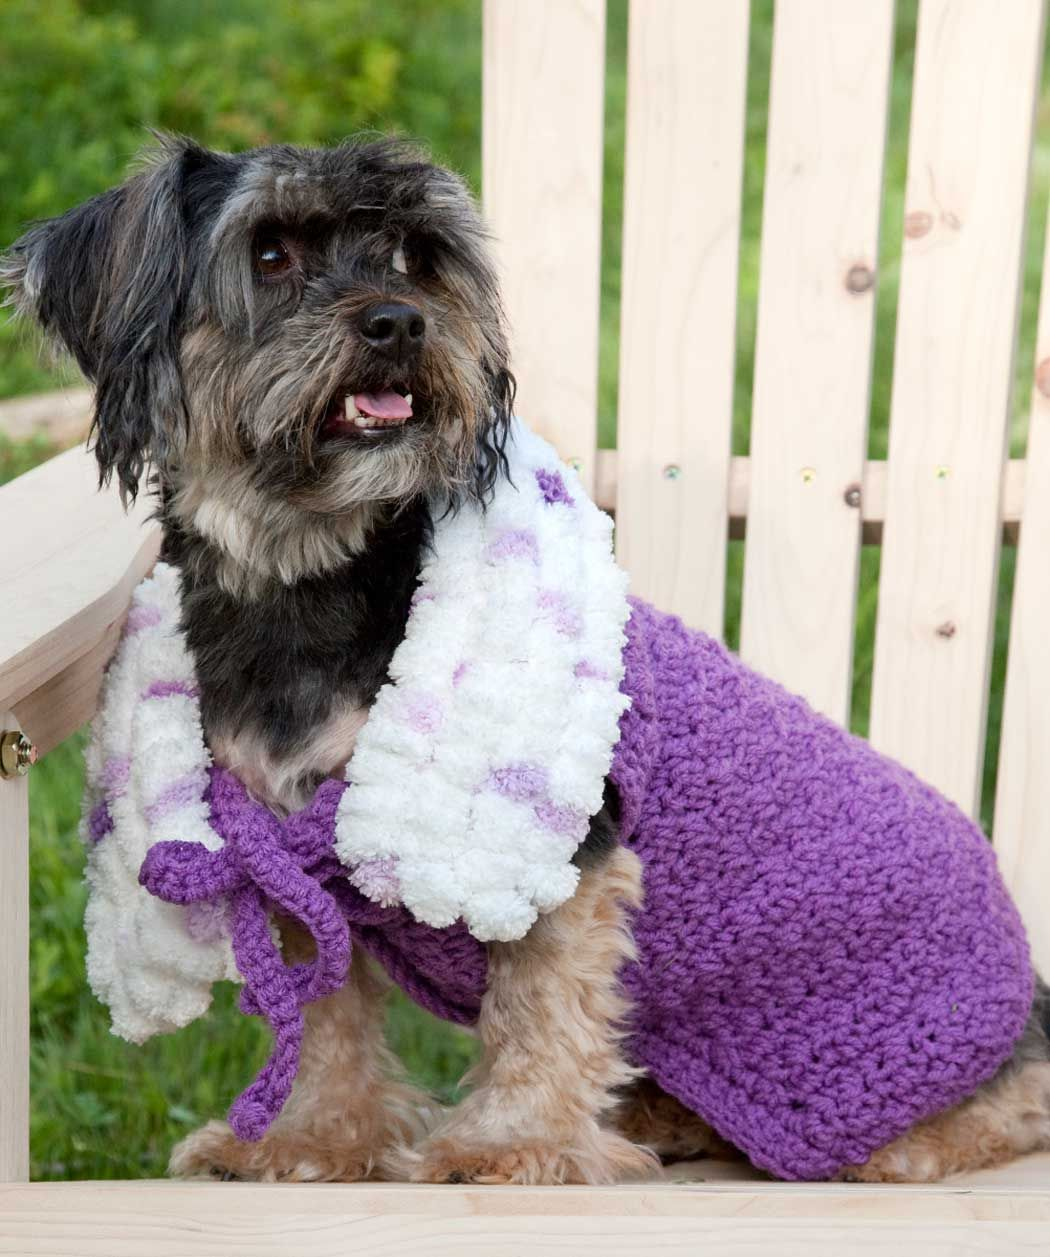 Purpleicious dog coat crochet pattern diy dog clothing miss julias vintage knit crochet patterns free patterns 30 going to the dogs in knit crochet crafts purpleicious dog sweater craft your home bankloansurffo Gallery